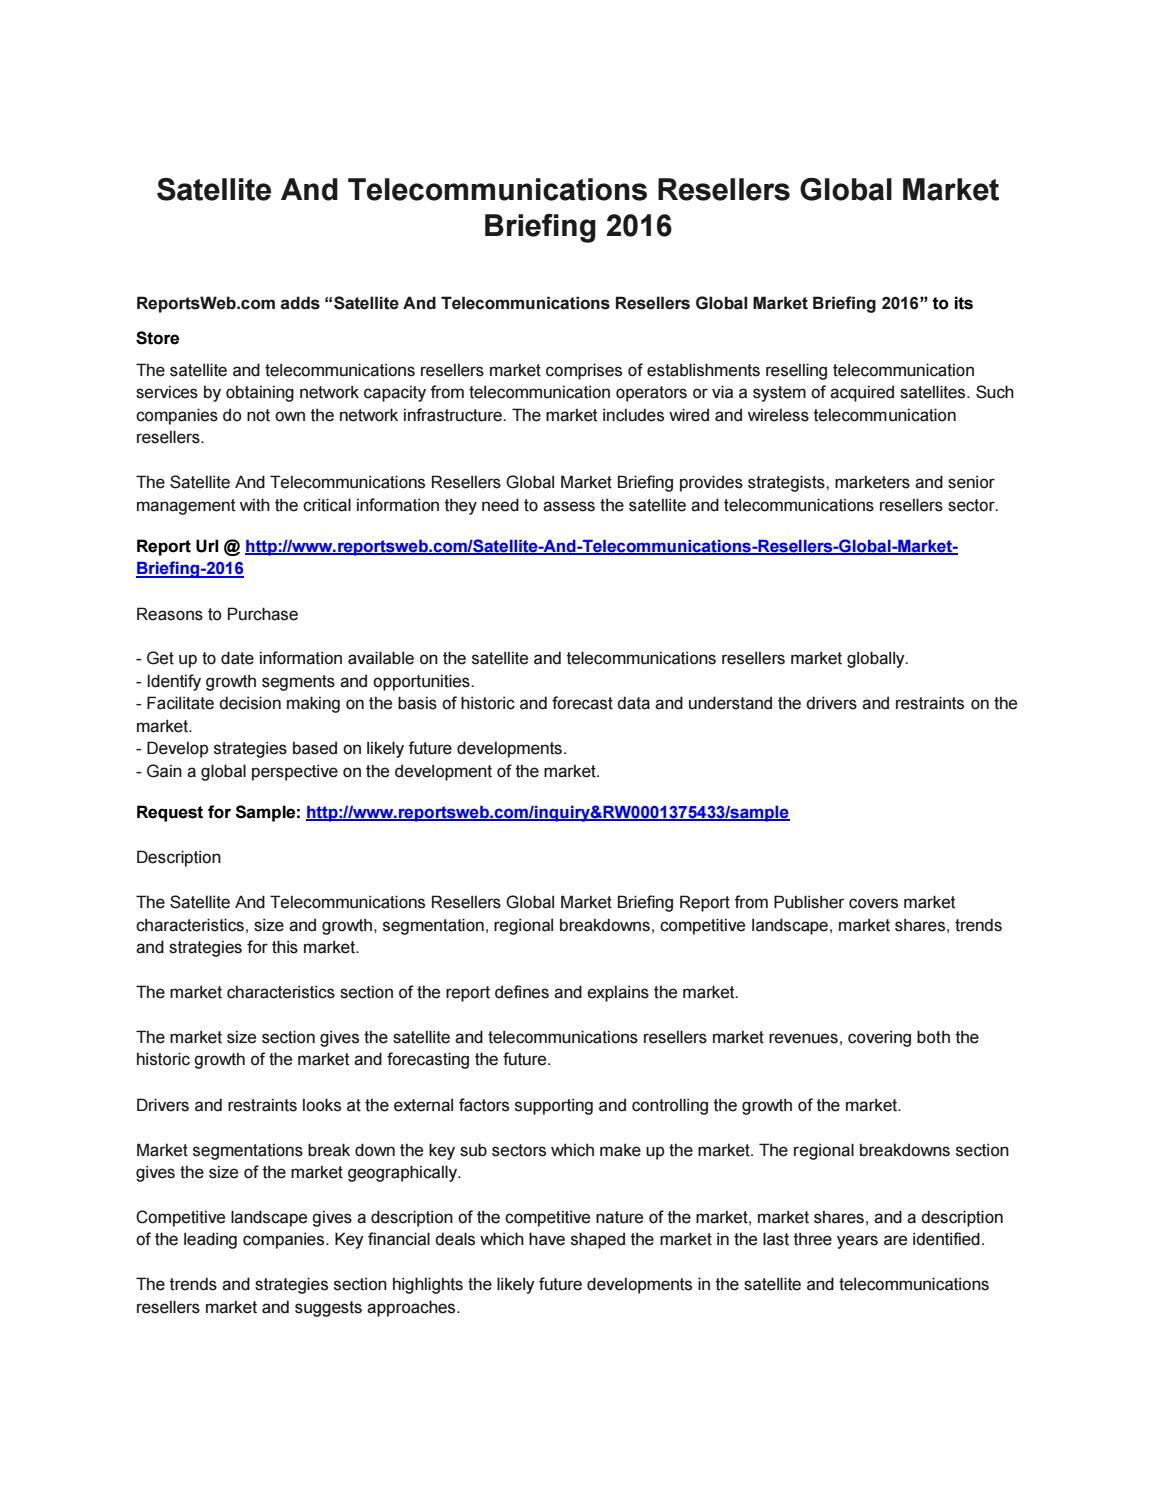 Satellite and telecommunications resellers global market